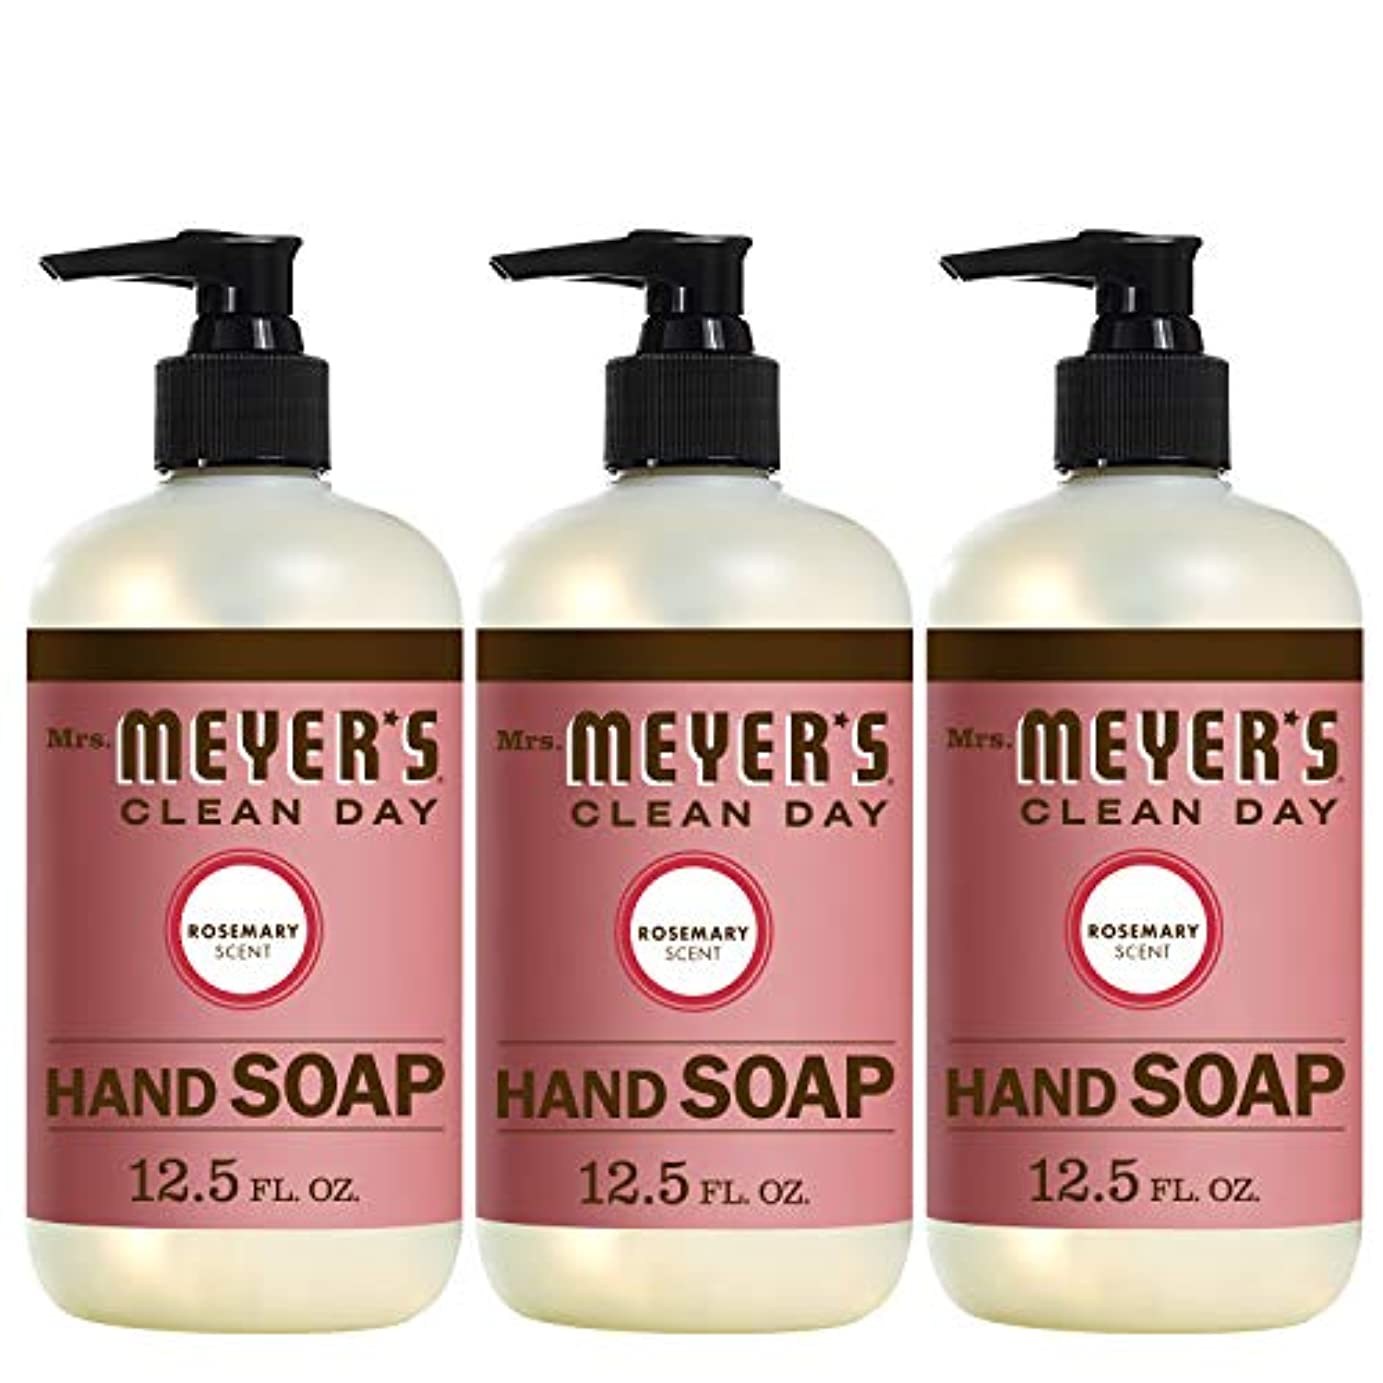 Liquid Hand Soap - Rosemary - Case of 6 - 12.5 oz by Mrs. Meyer's